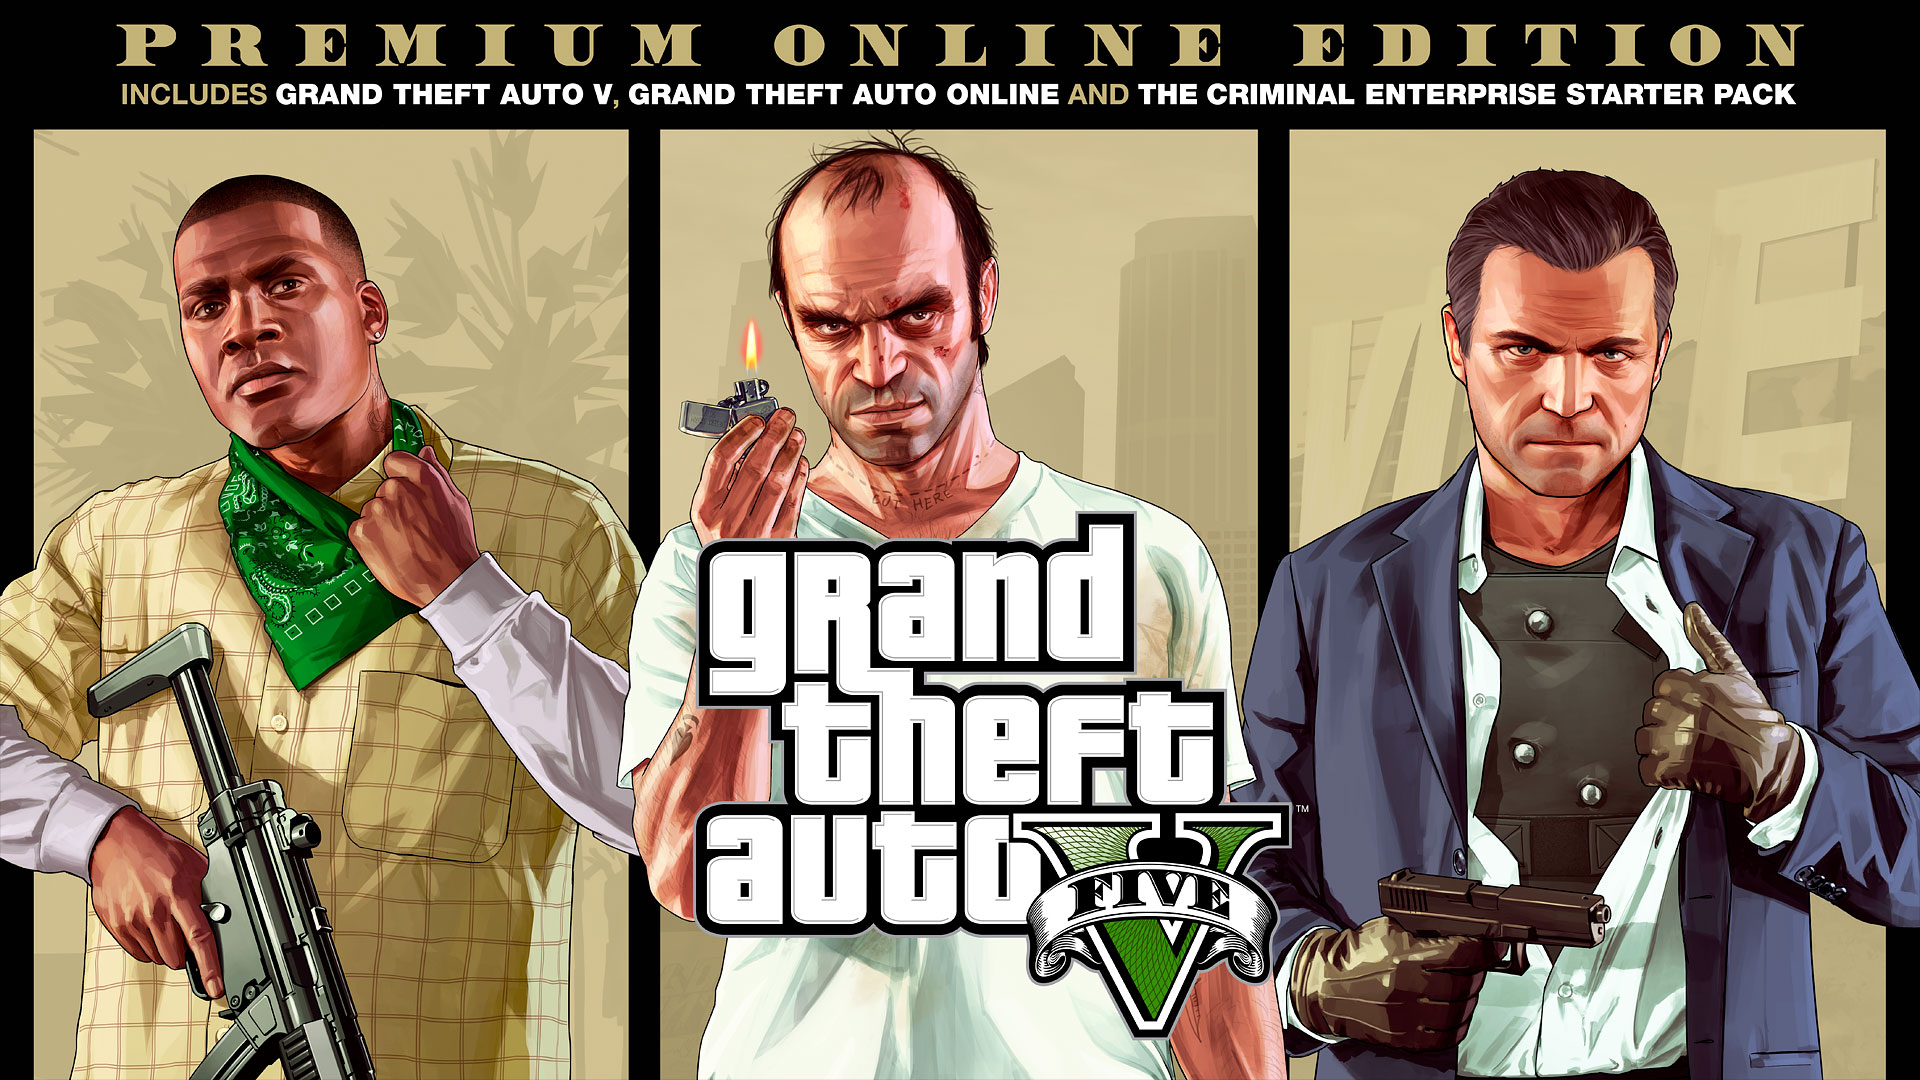 Gta V Now Free On The Epic Games Store Available Through May 21 Updated